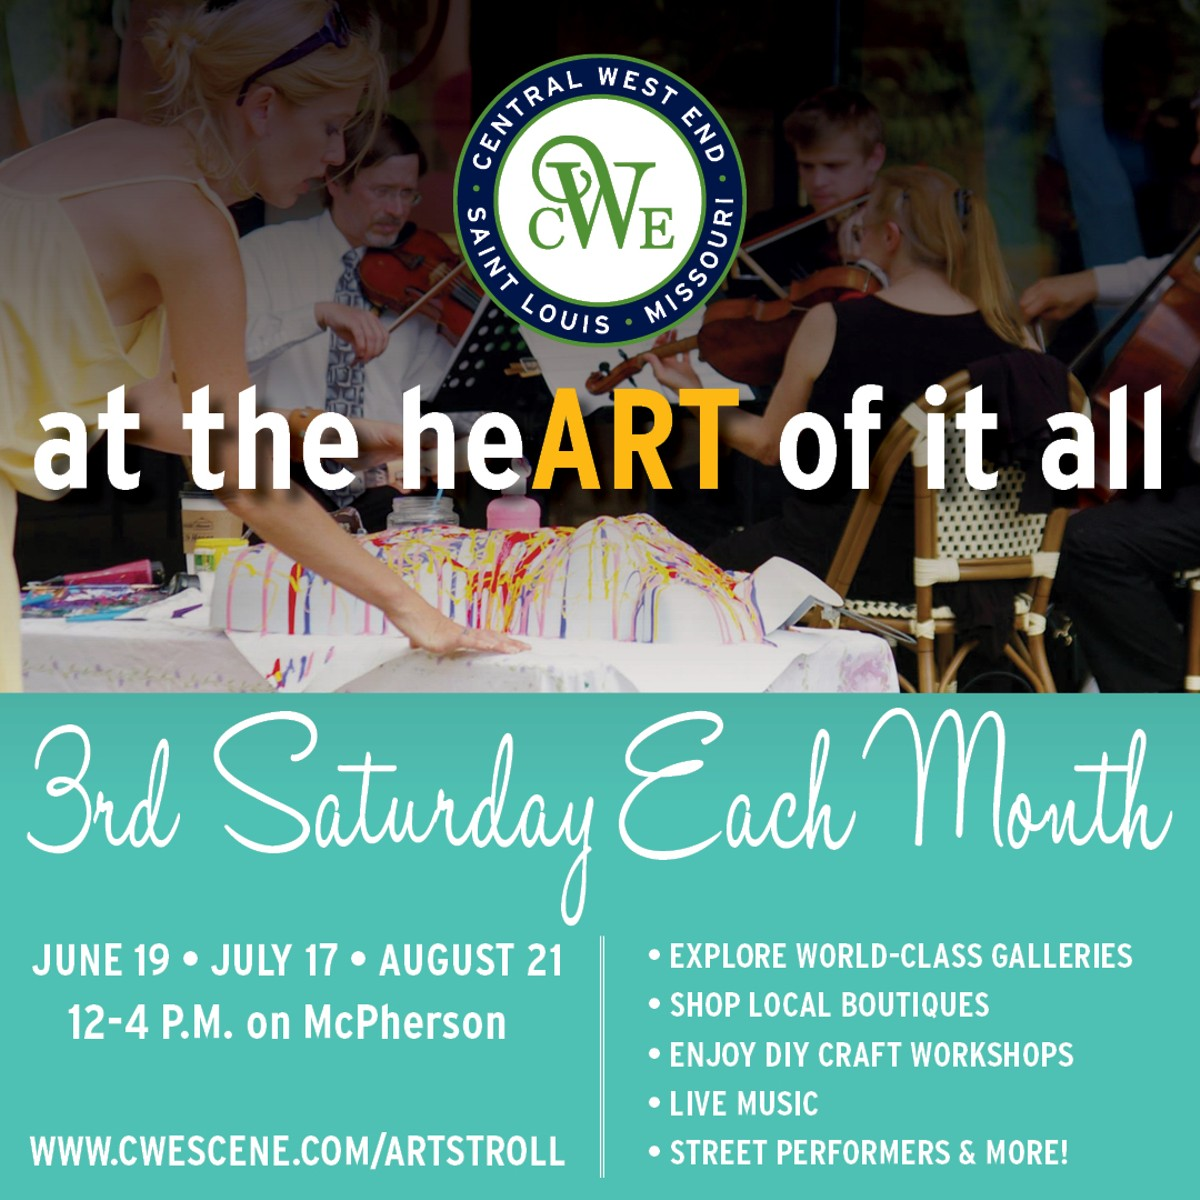 Come explore why the CWE is at the heART of it all!